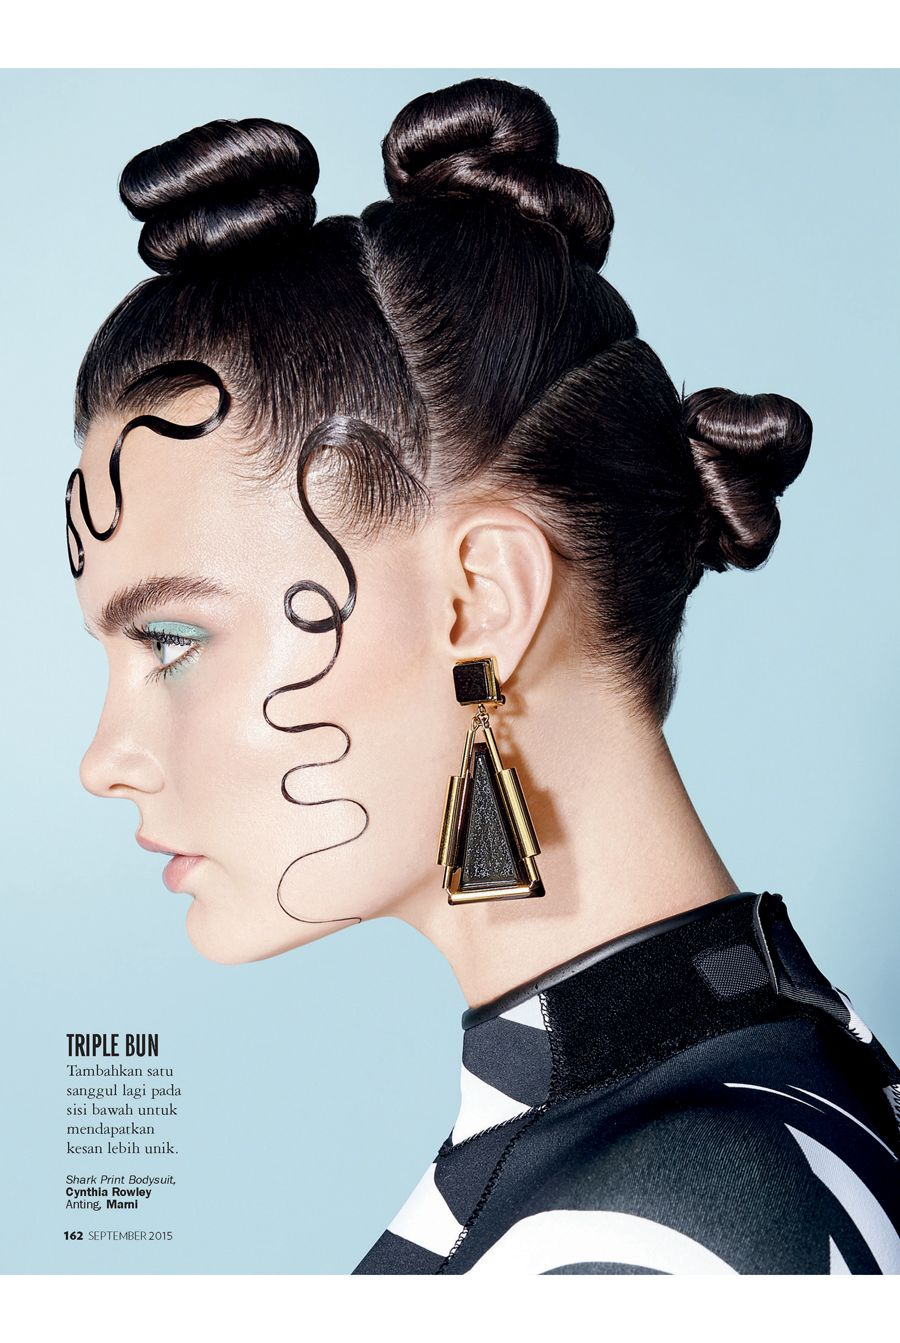 Marie Claire IND - Twist & Curl on Behance